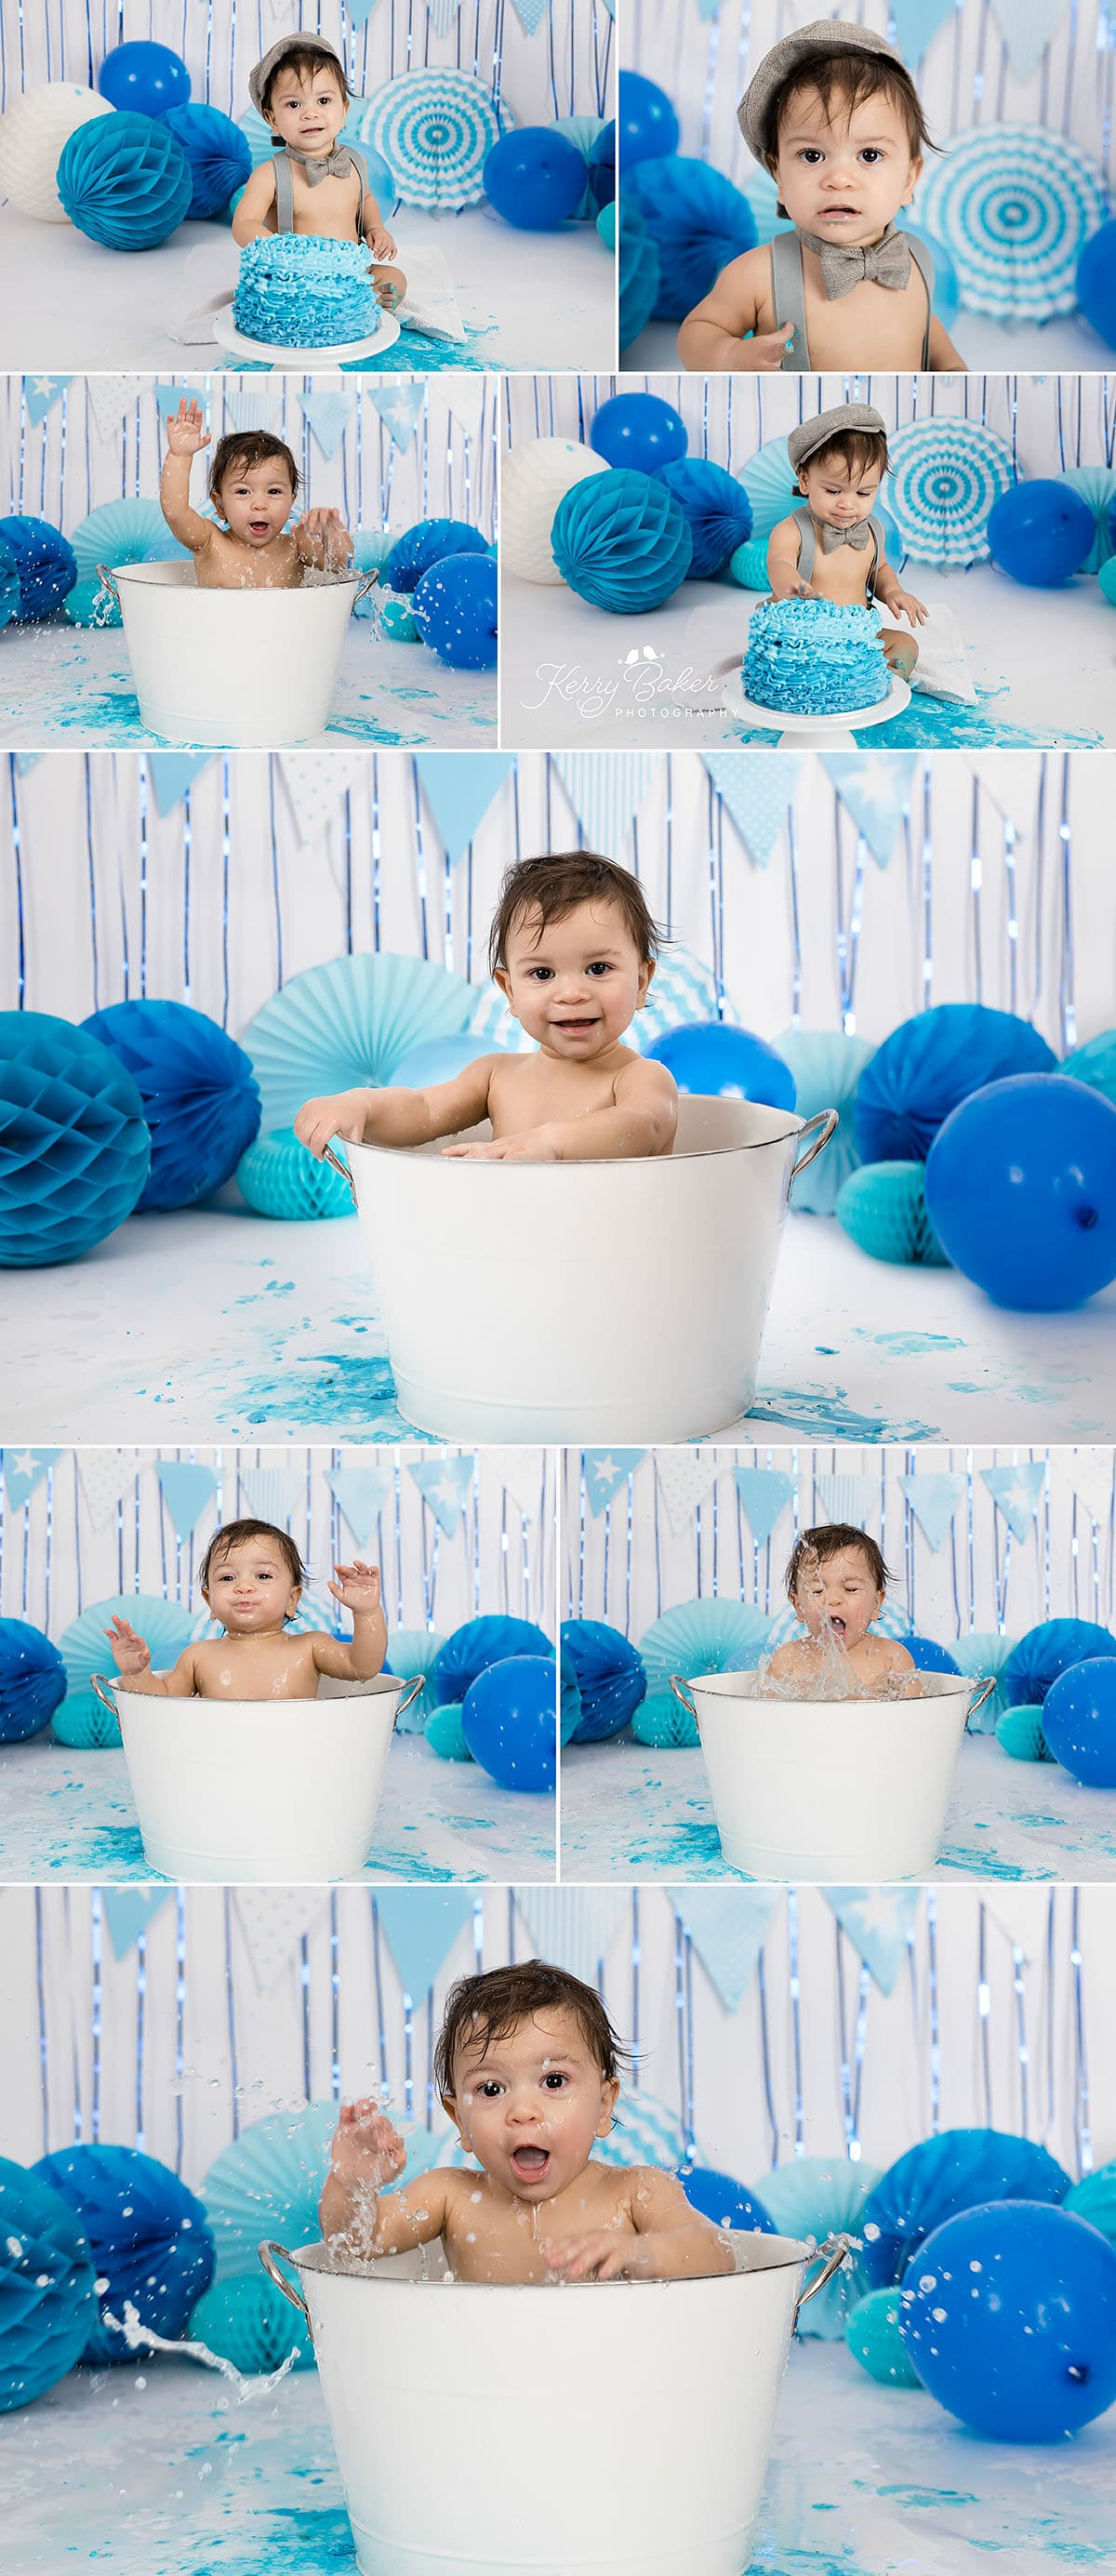 Cake Smash Photography Perth Ezra Splashing in the bath 1st Birthday